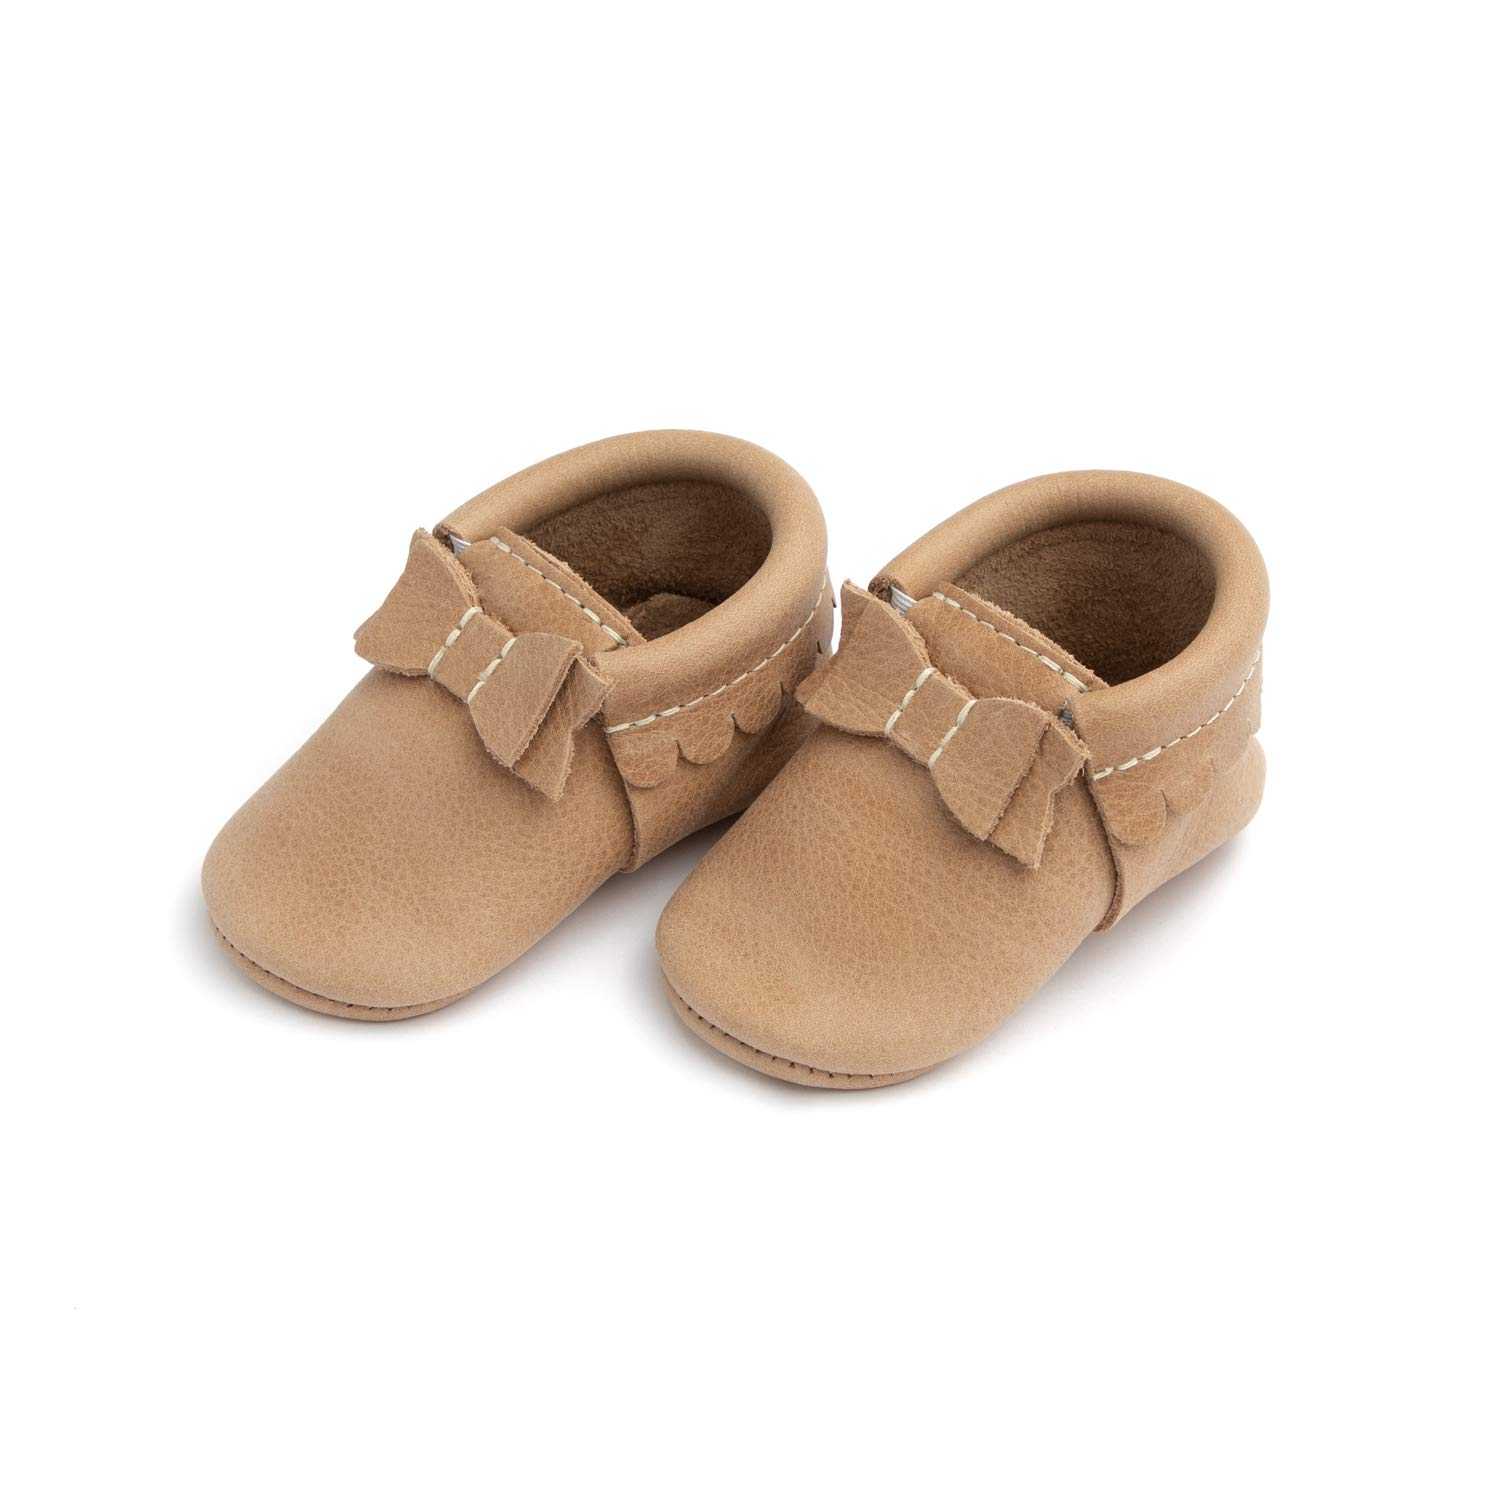 Freshly Picked - Rubber Mini Sole Leather Bow Moccasins - Toddler Girl Shoes - Size 7 Weathered Brown by Freshly Picked